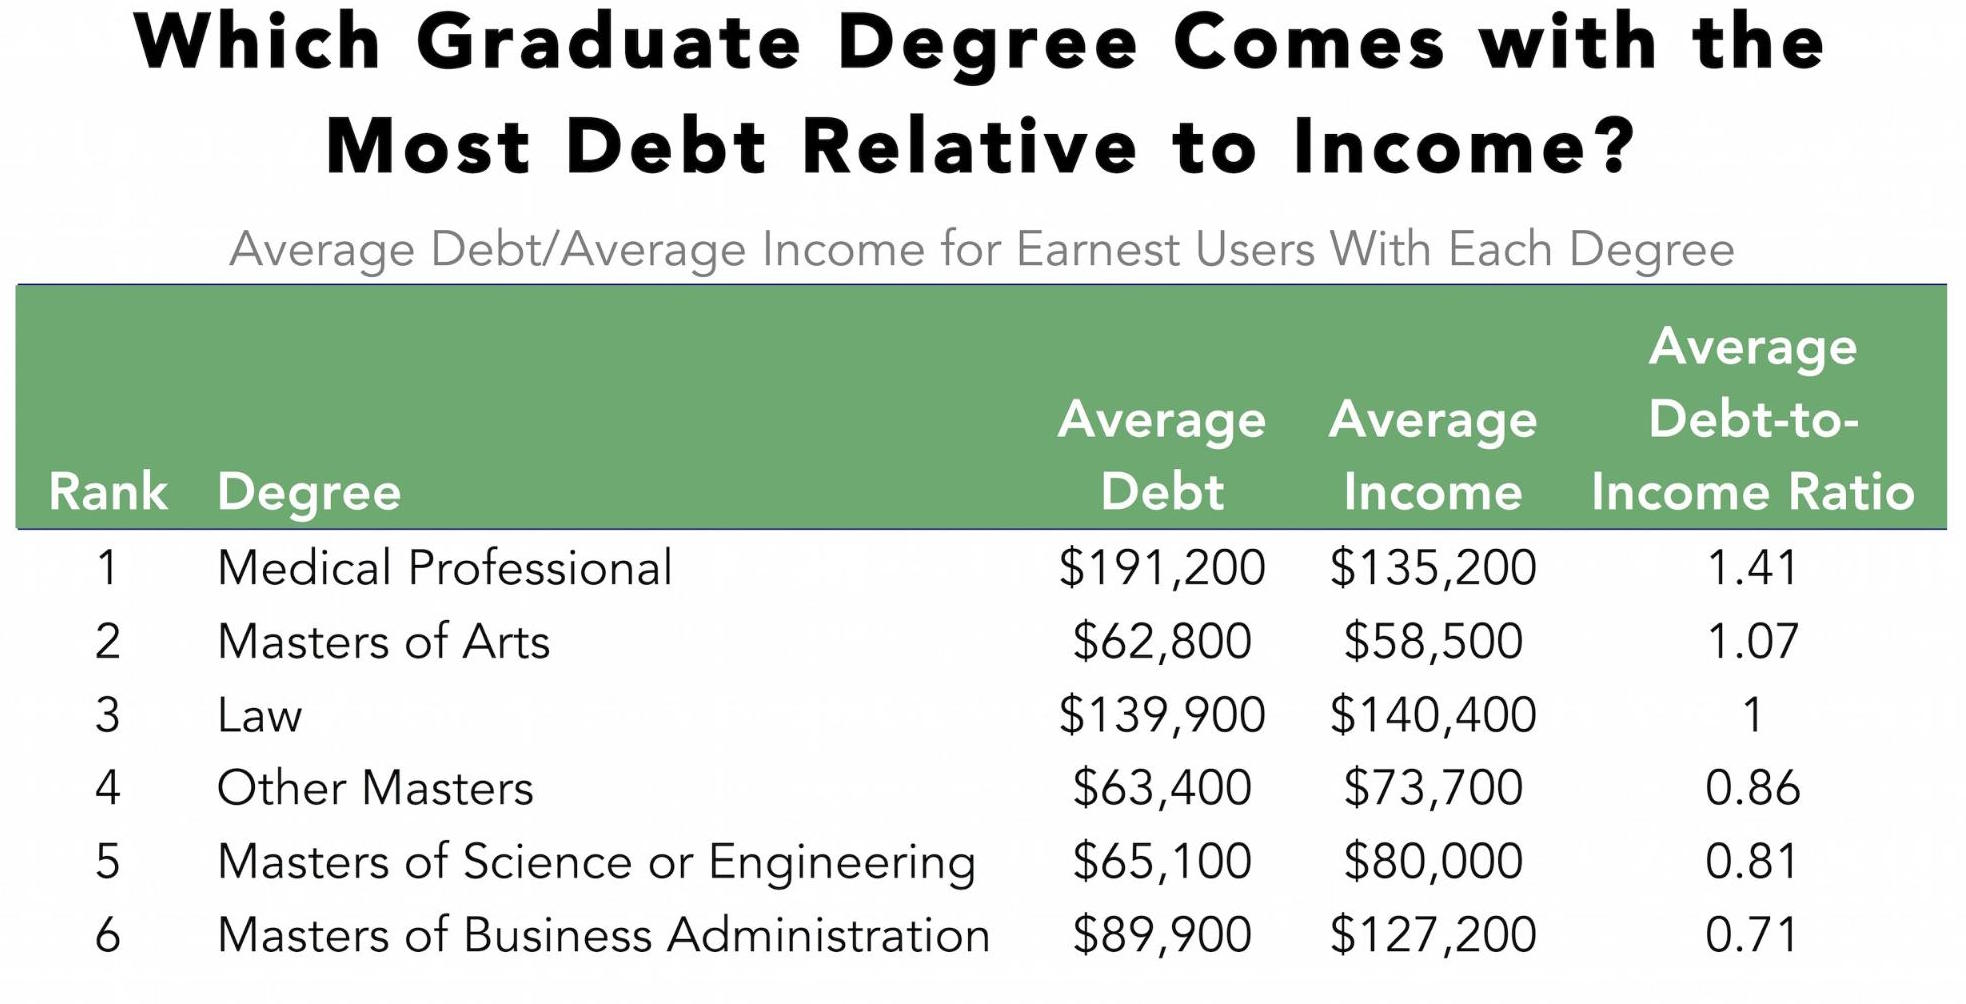 which graduate degree gets you out of debt the fastest zero hedge values over 1 mean the degree cost more than what the typical graduate makes in a year